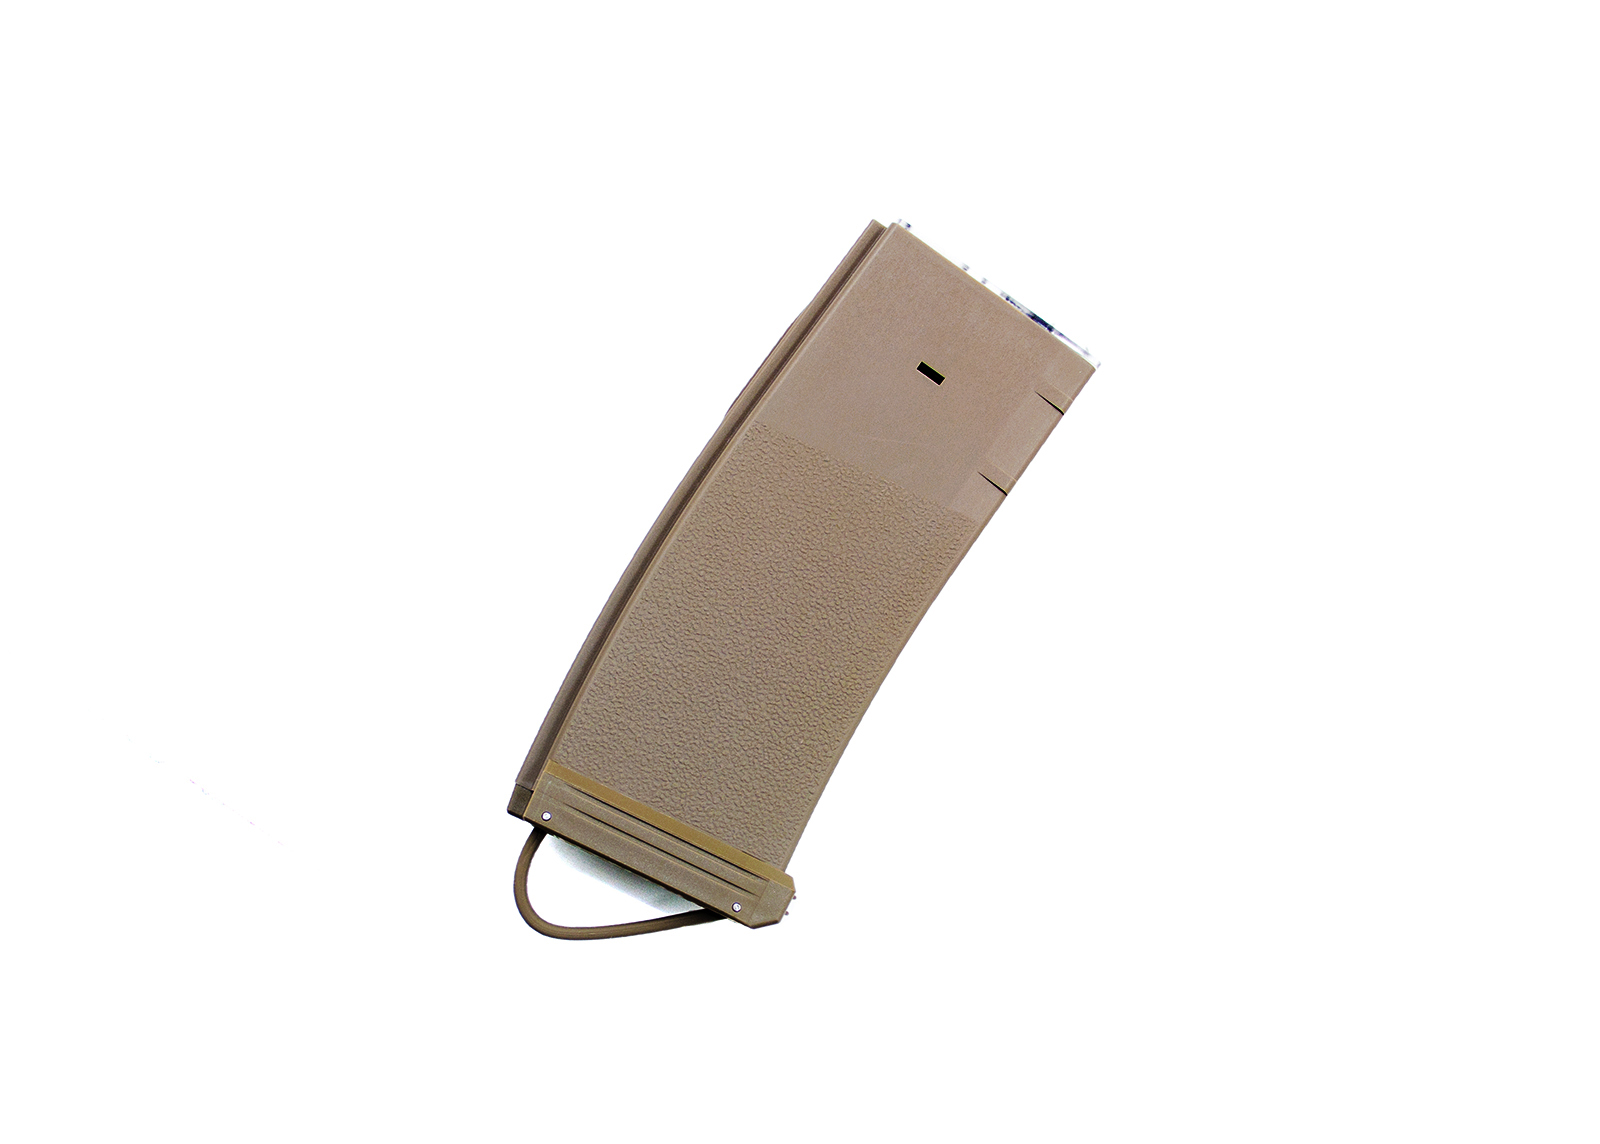 Bhive 150-Round AEG Tracer Magazine for M16/M4 series (Tan/1pcs) - Modify Airsoft Accessories